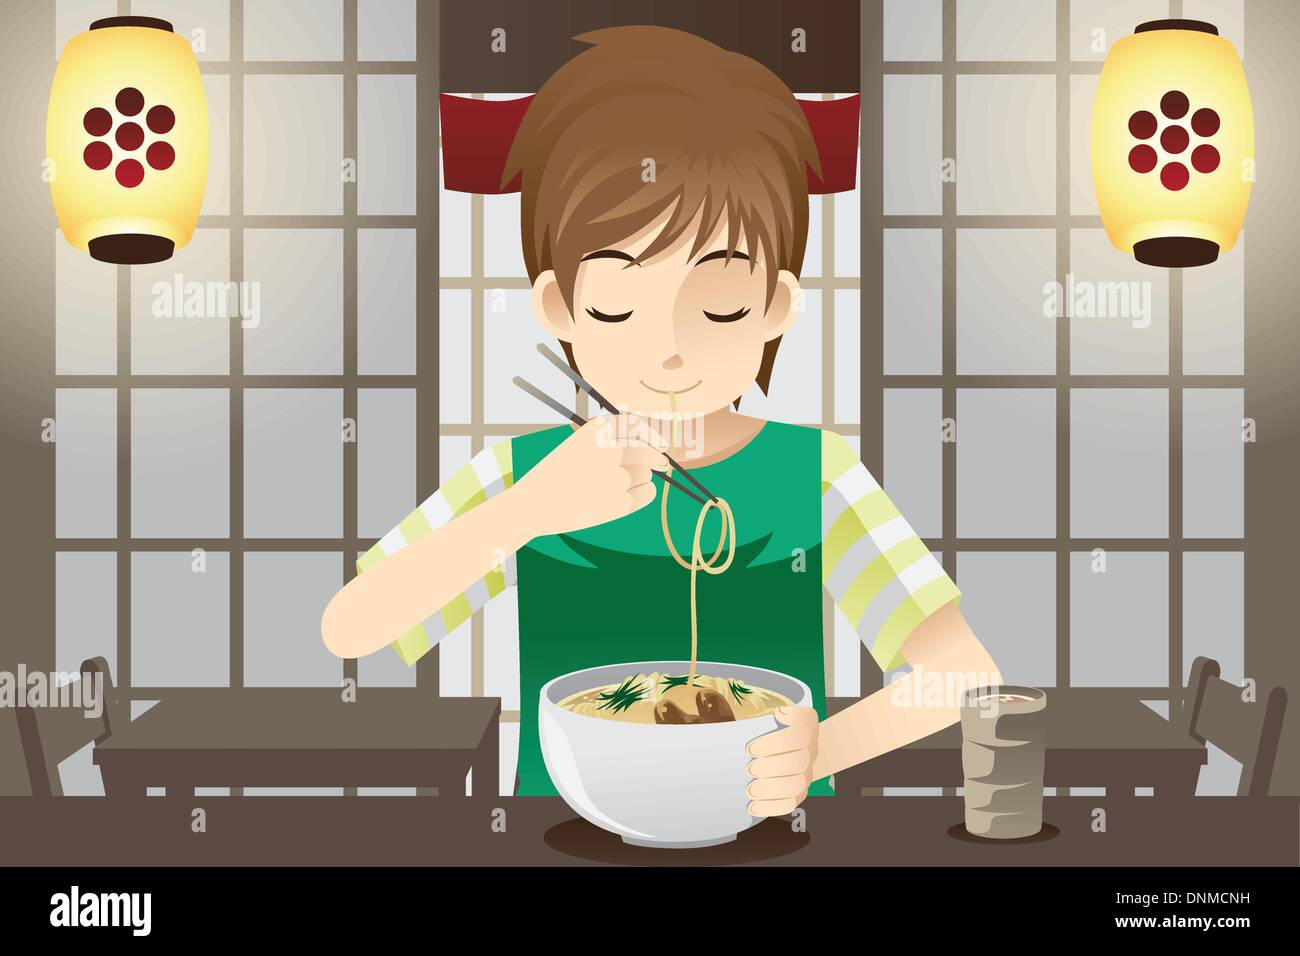 A vector illustration of a boy eating a bowl of noodles - Stock Vector